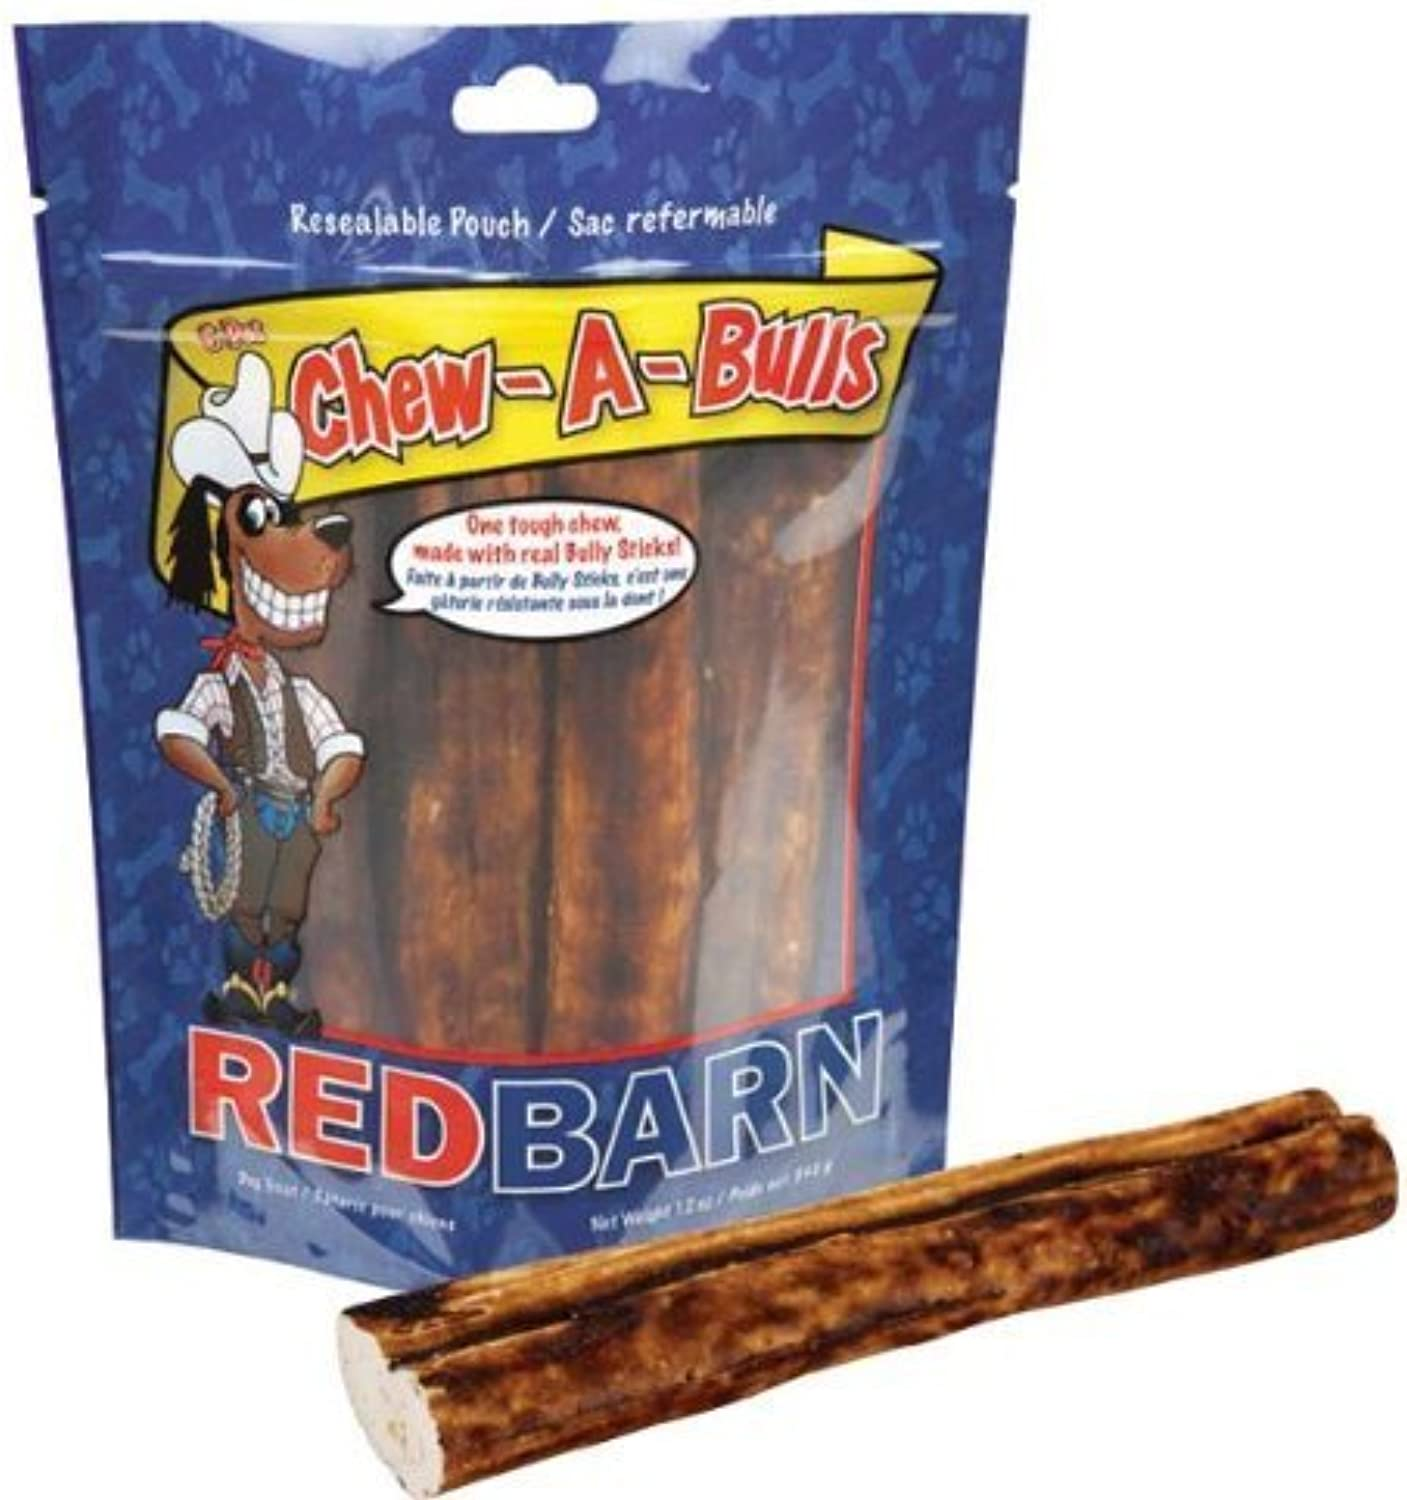 Redbarn Pet Products 785184250068 Redb ChewABulls Alt, 6Pack Bag by Phillips Feed & Pet Supply